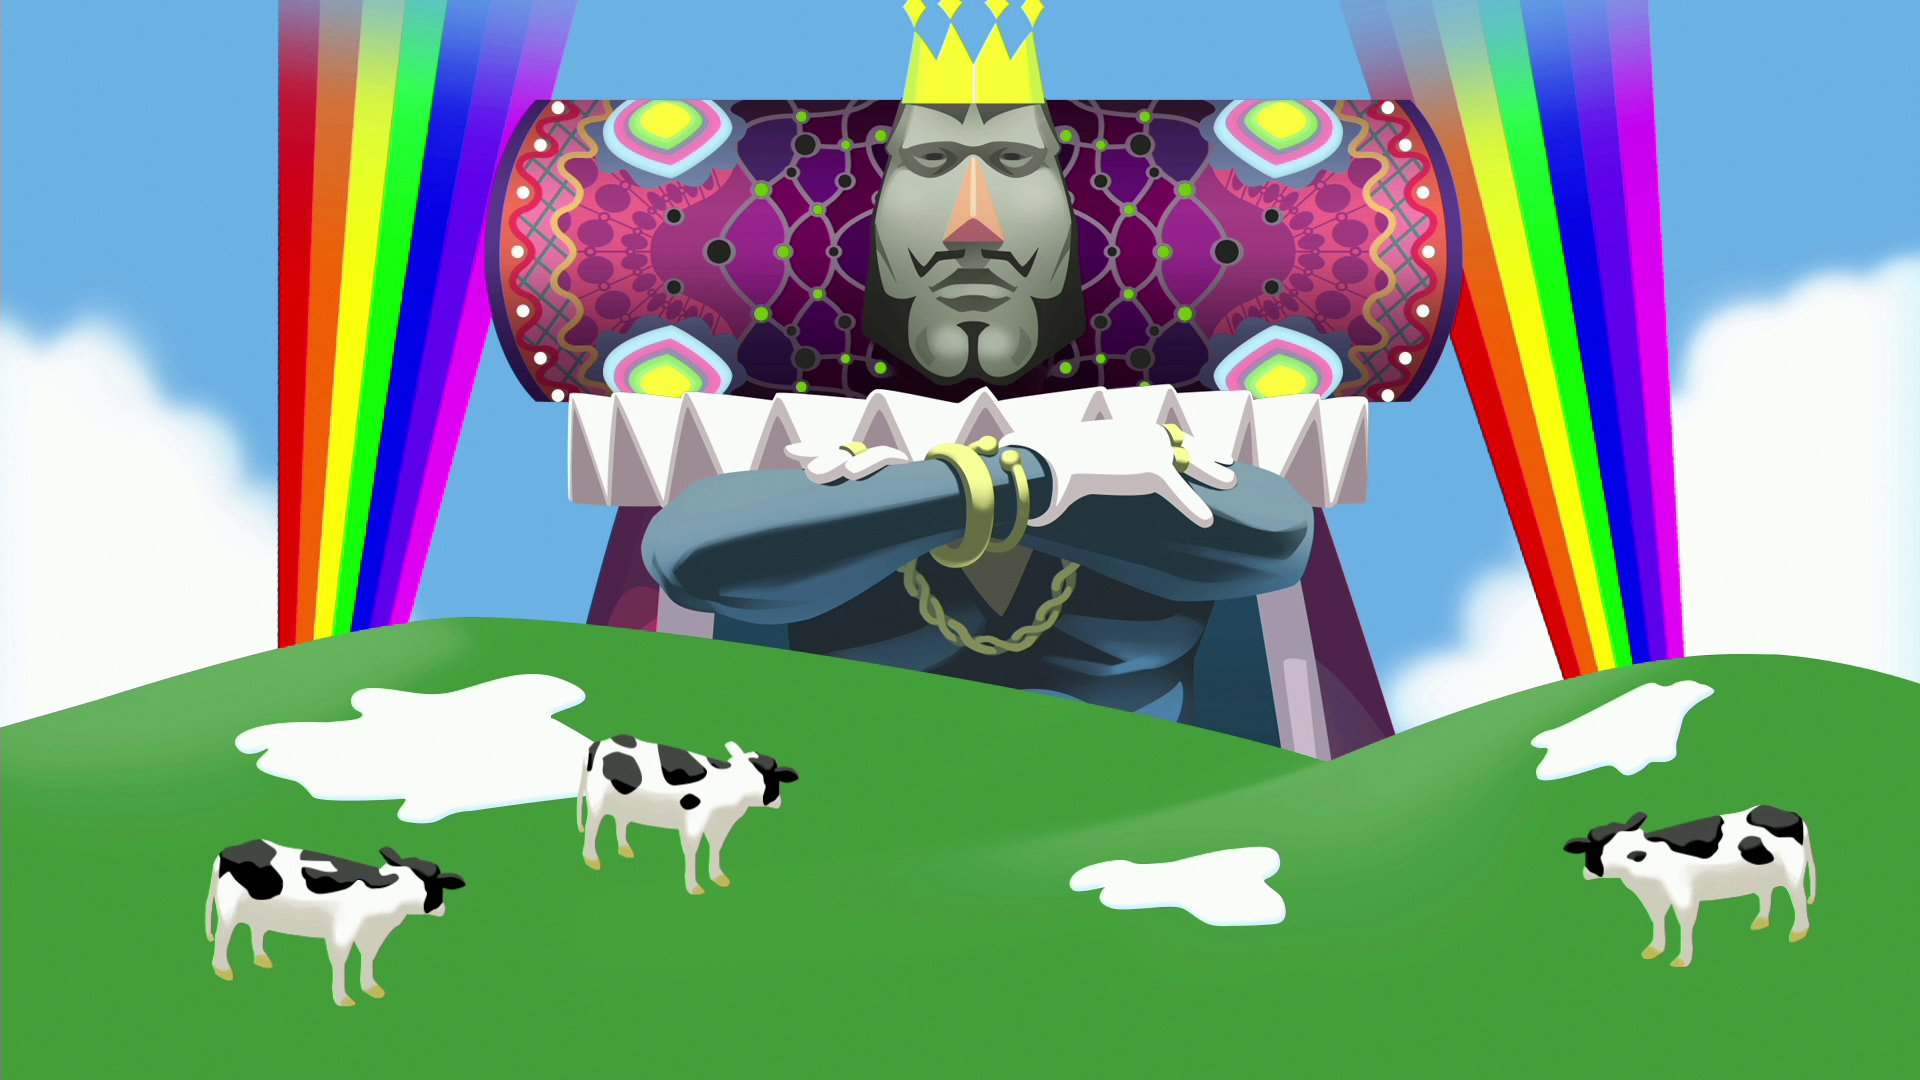 Katamari Damacy Reroll is finally coming to PS4 and Xbox One in November